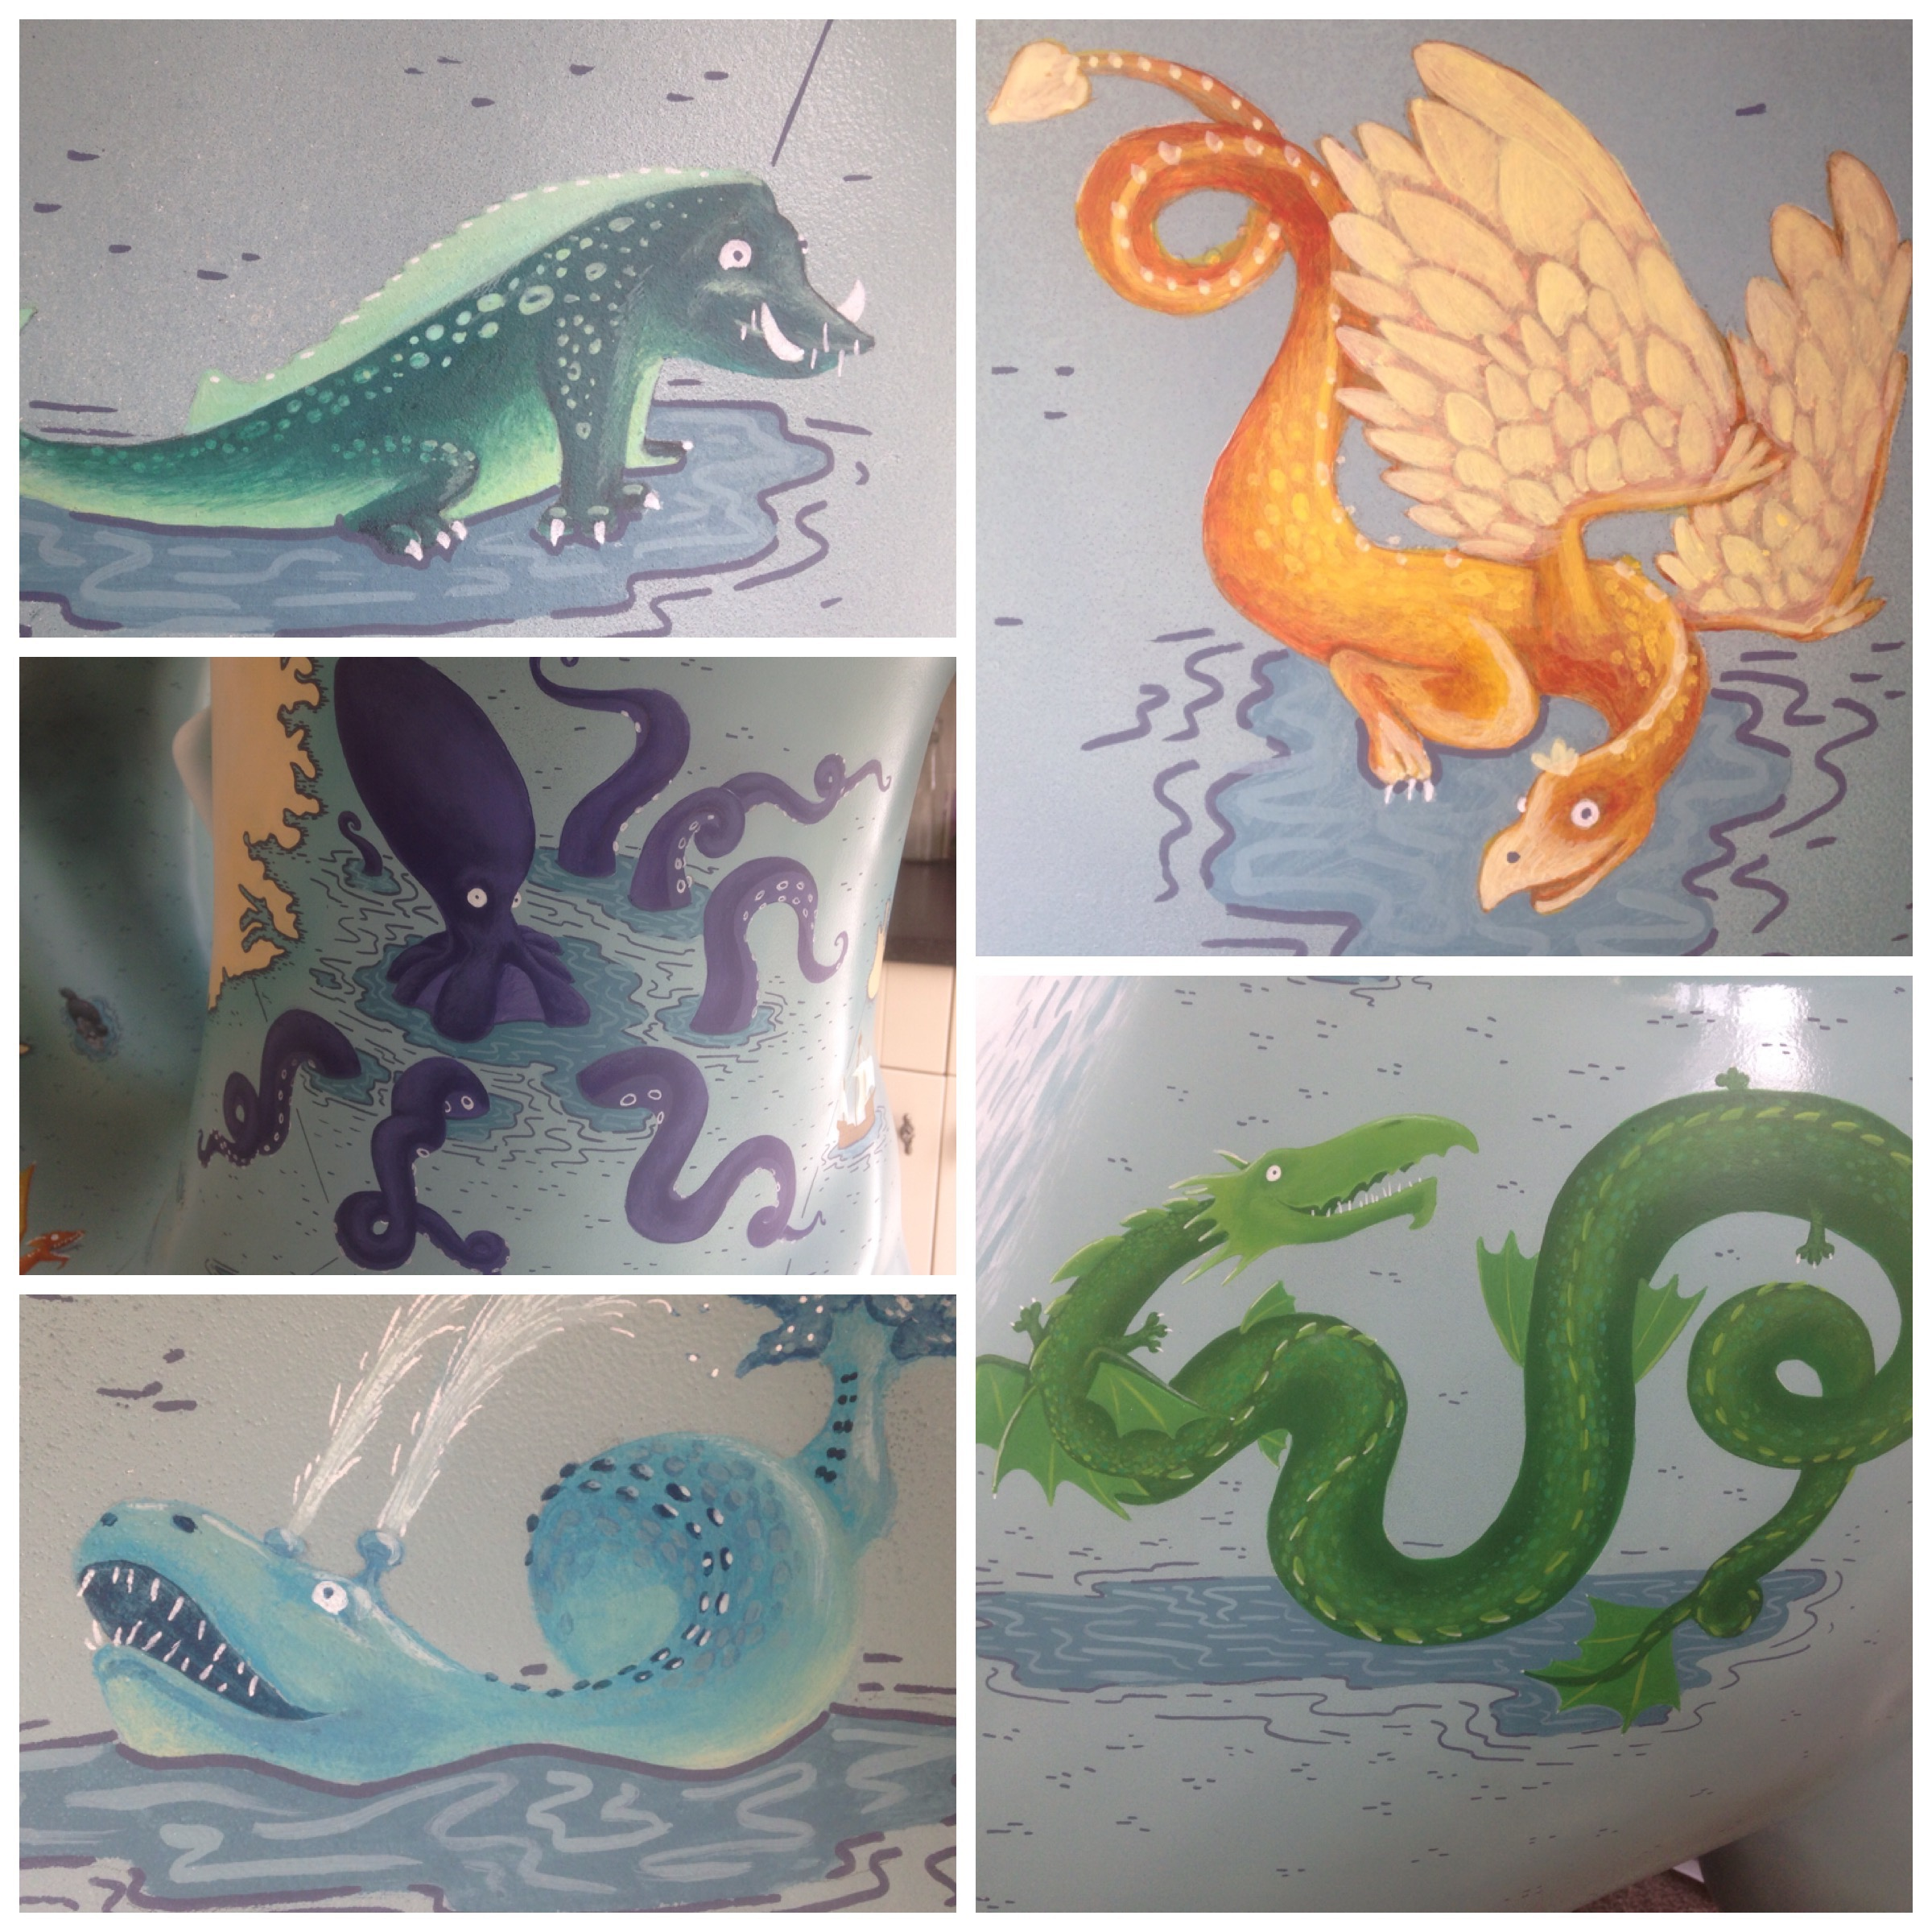 A selection of illustrated sea monsters by Fiona Gowen. They were painted on GoGo Dennis the dragon as part of the Norwich 2015 GoGoDragons project for Break Charity